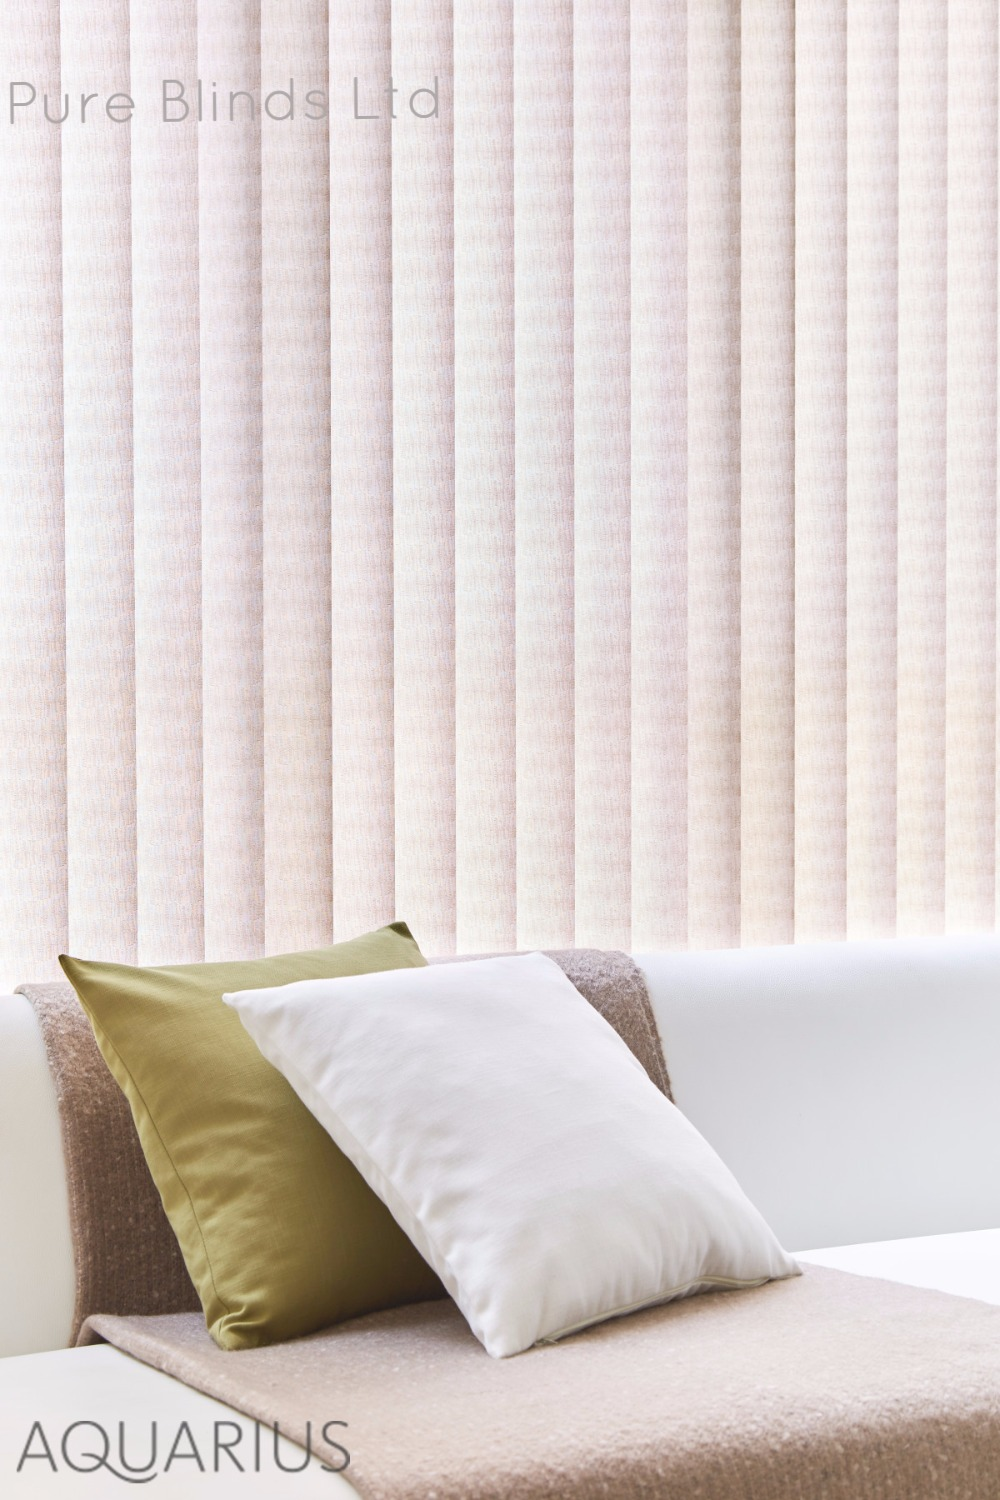 Liverpool Blinds widnes Blinds